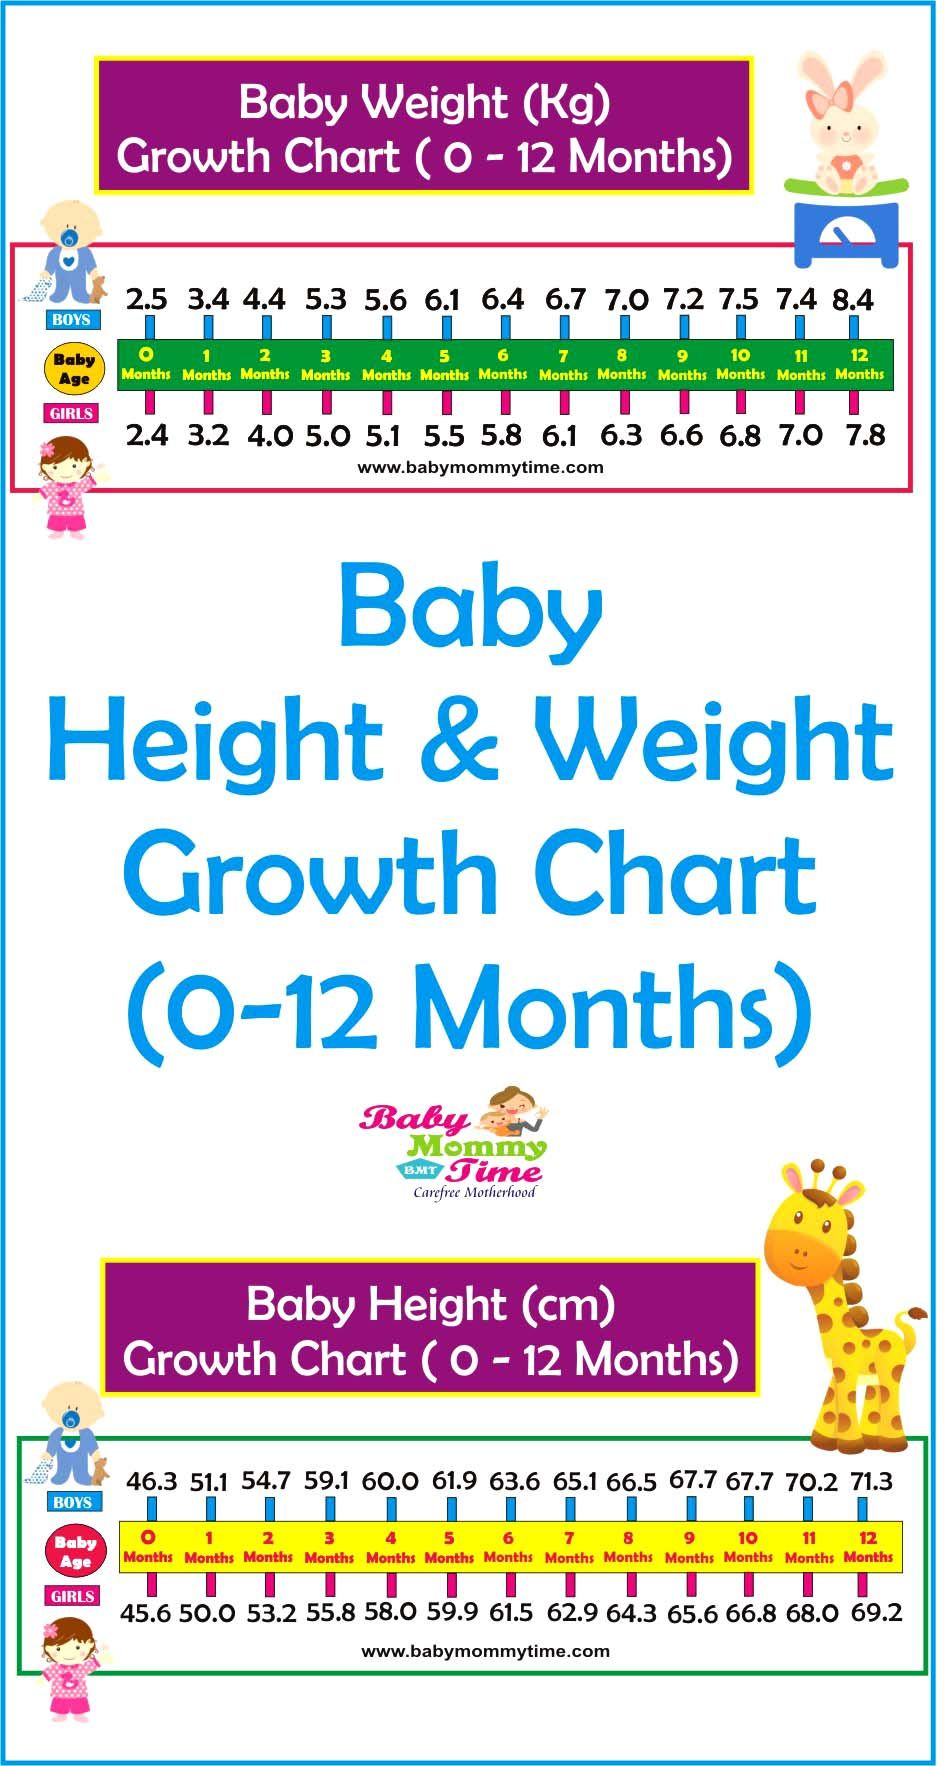 Baby Growth Chart Of Height Weight Find Simple Easy Way To Understand Your Baby Growth Chart Of Heig Baby Growth Chart Baby Growth Baby Girl Growth Chart